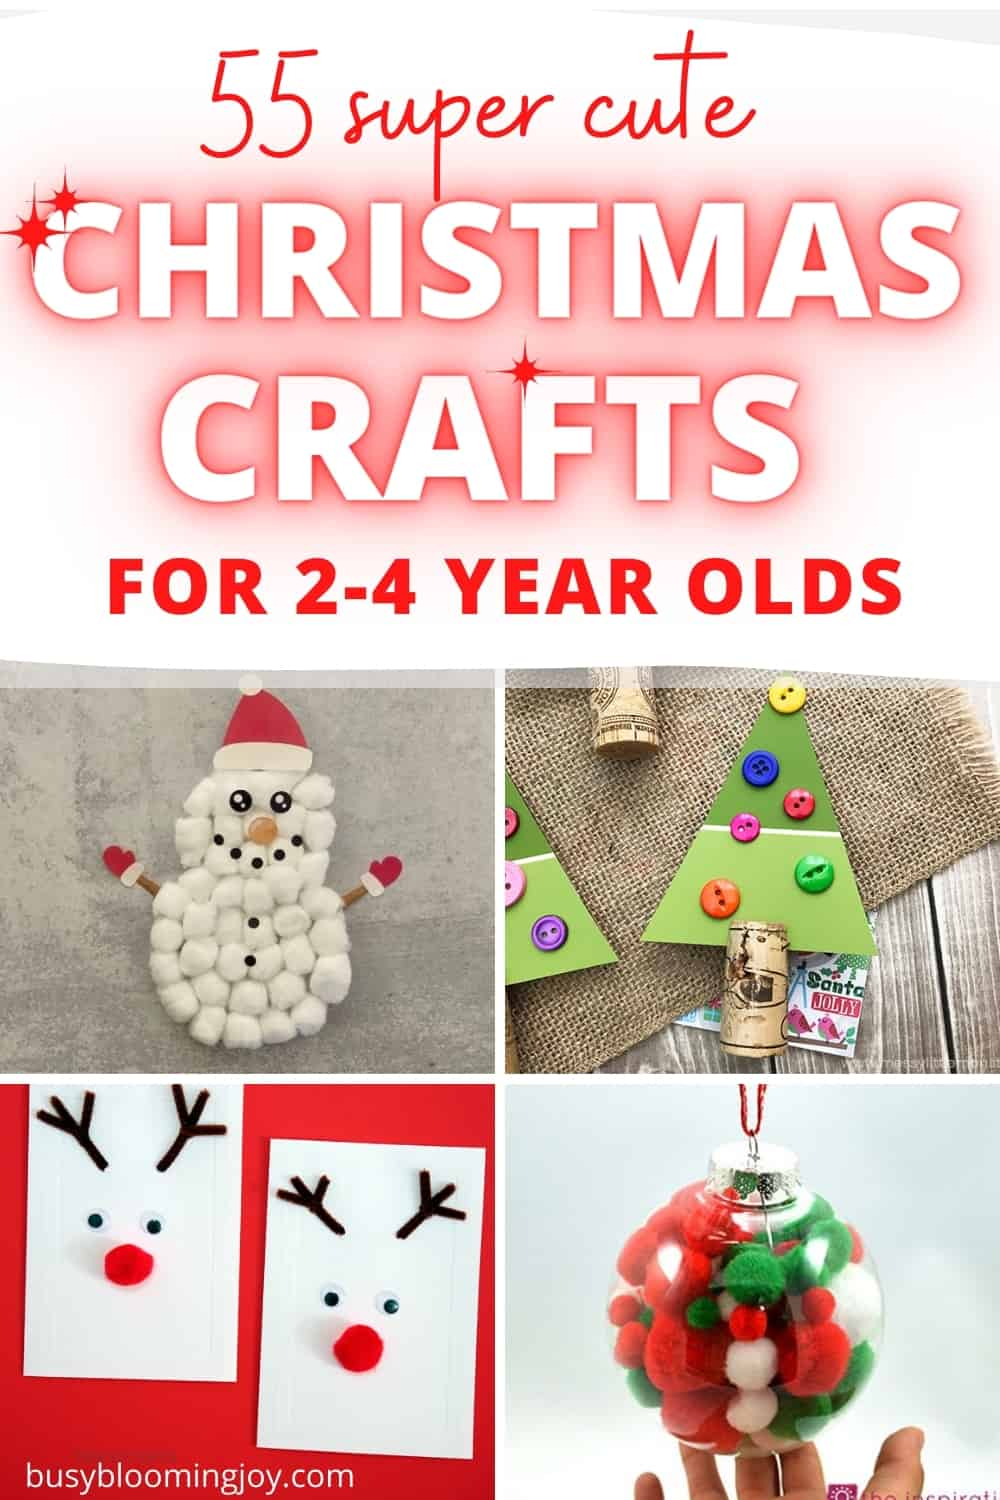 Christmas crafts for toddlers feature